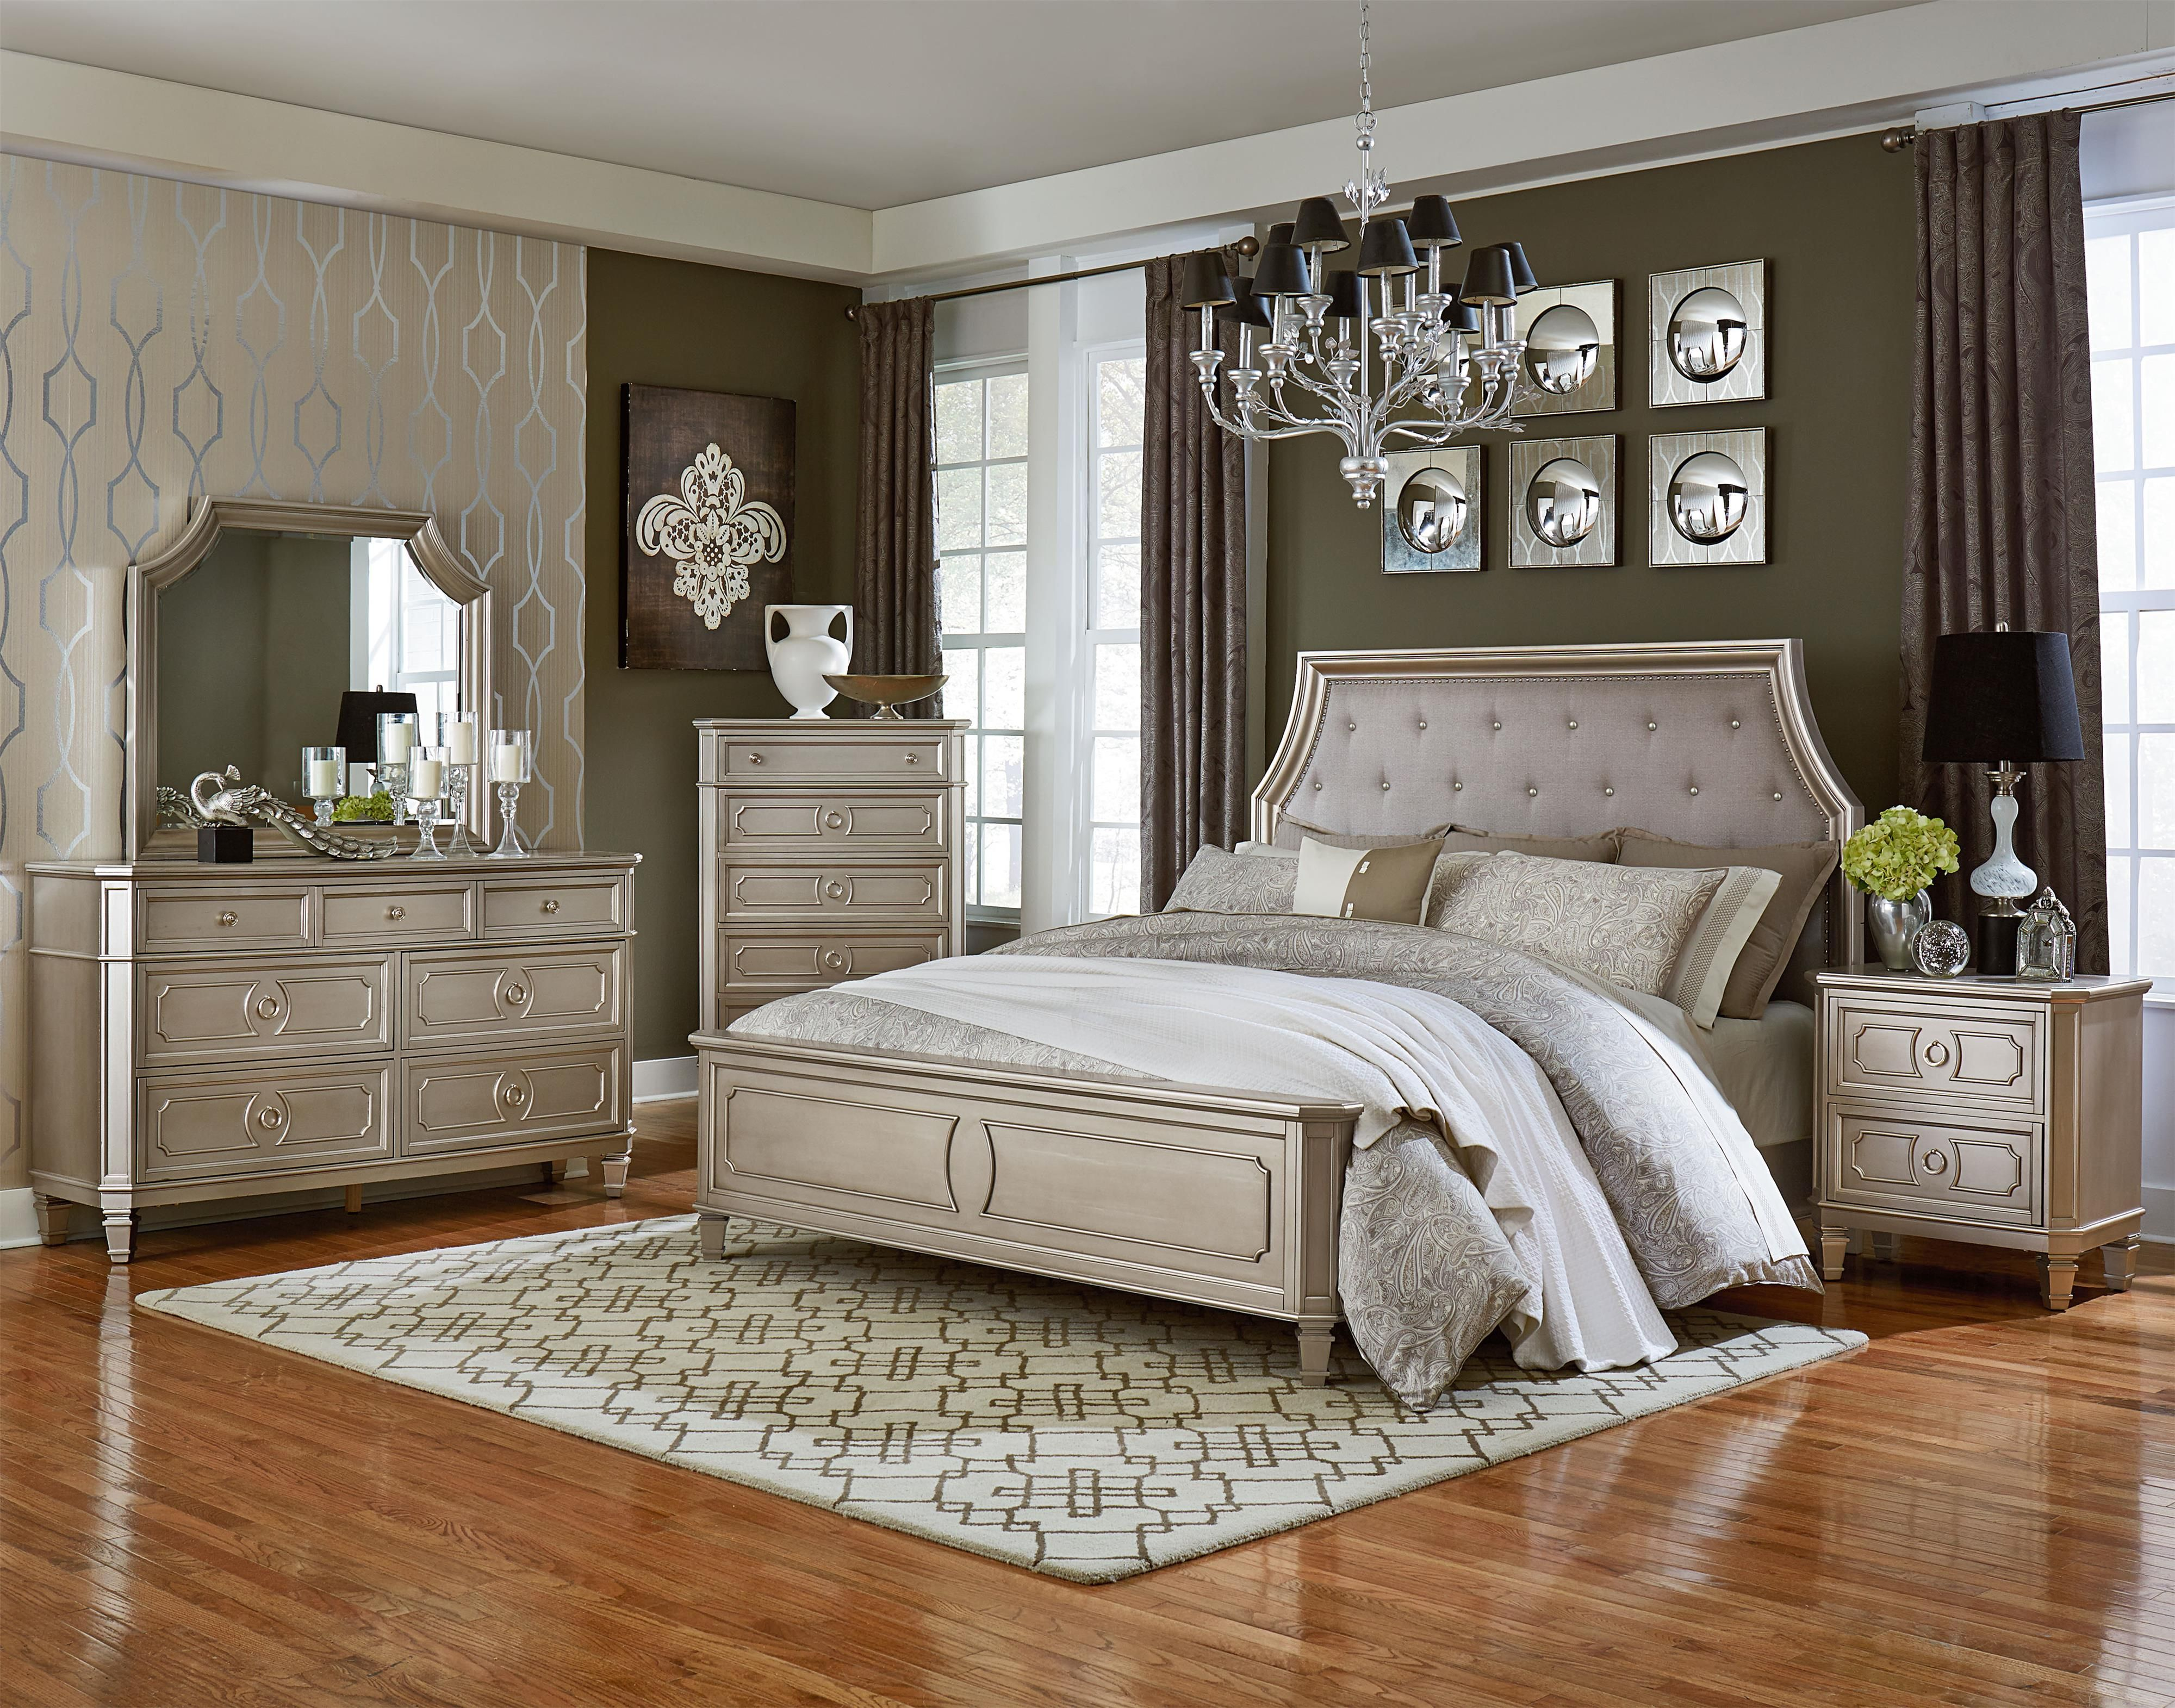 sophisticated bedroom furniture. Create A Sophisticated Bedroom With This Collection. The Rich Bourbon Brown Or Glam Silver Finish, Canted Corners And Square Turned Feet Give It Classic Furniture